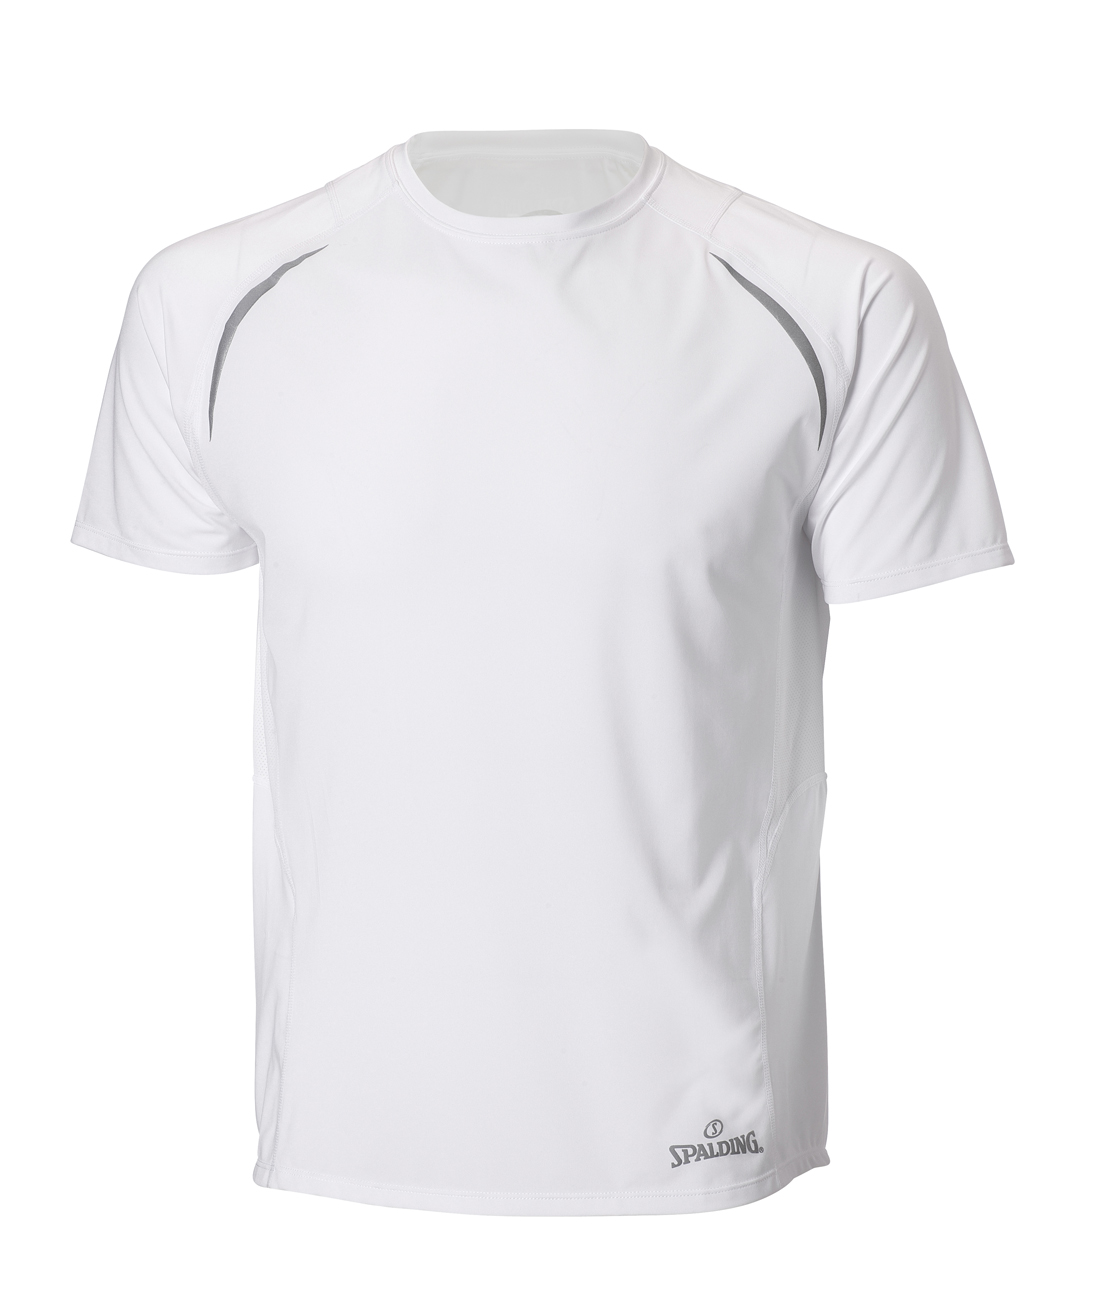 Spalding Endurance heren T-shirt Wit